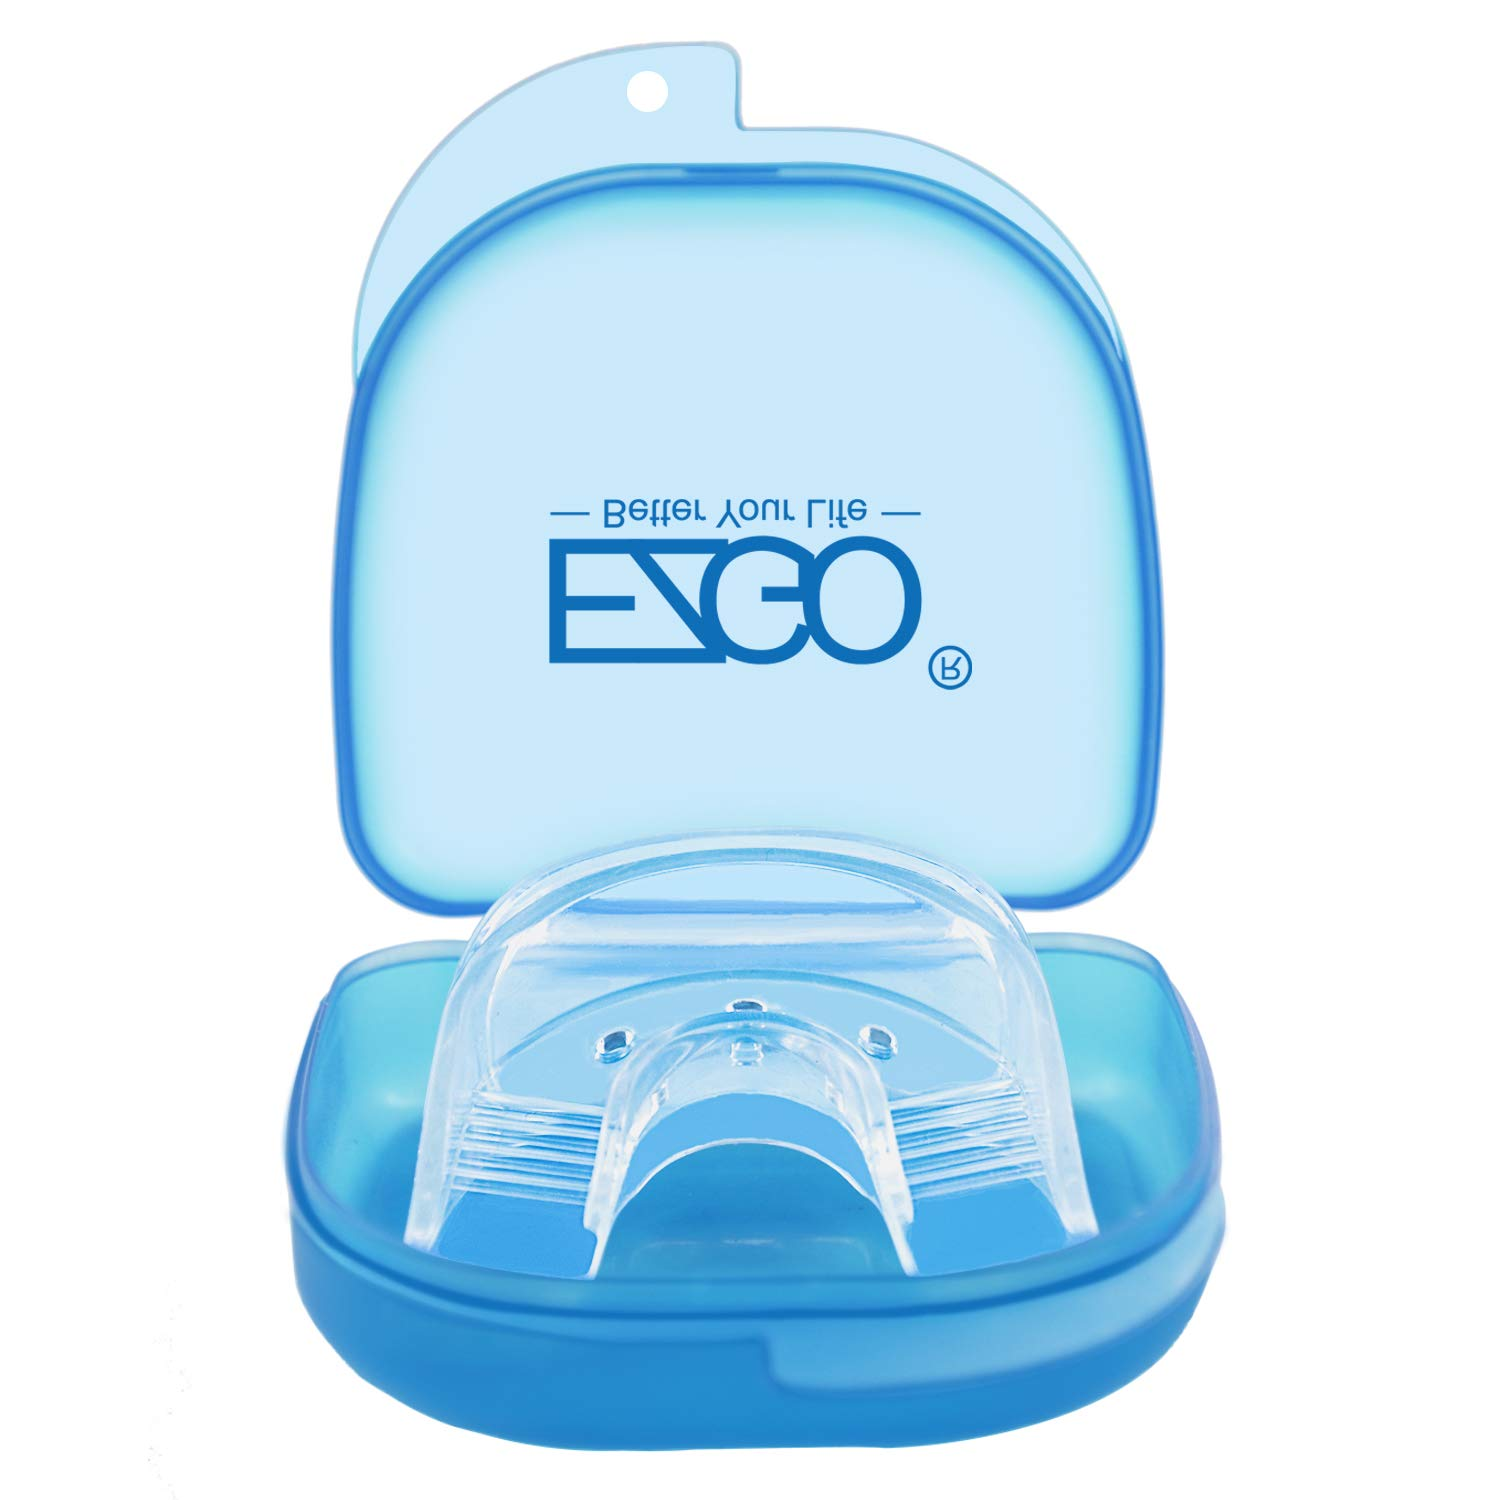 EZGO Teeth Whitening Trays Silicone Tray, Works with Tooth Whitening Light and Bleaching Gel, Comfort fot all mouth, Mouth Night Guard for Grinding Teeth, Dental Grade, Retainer Case